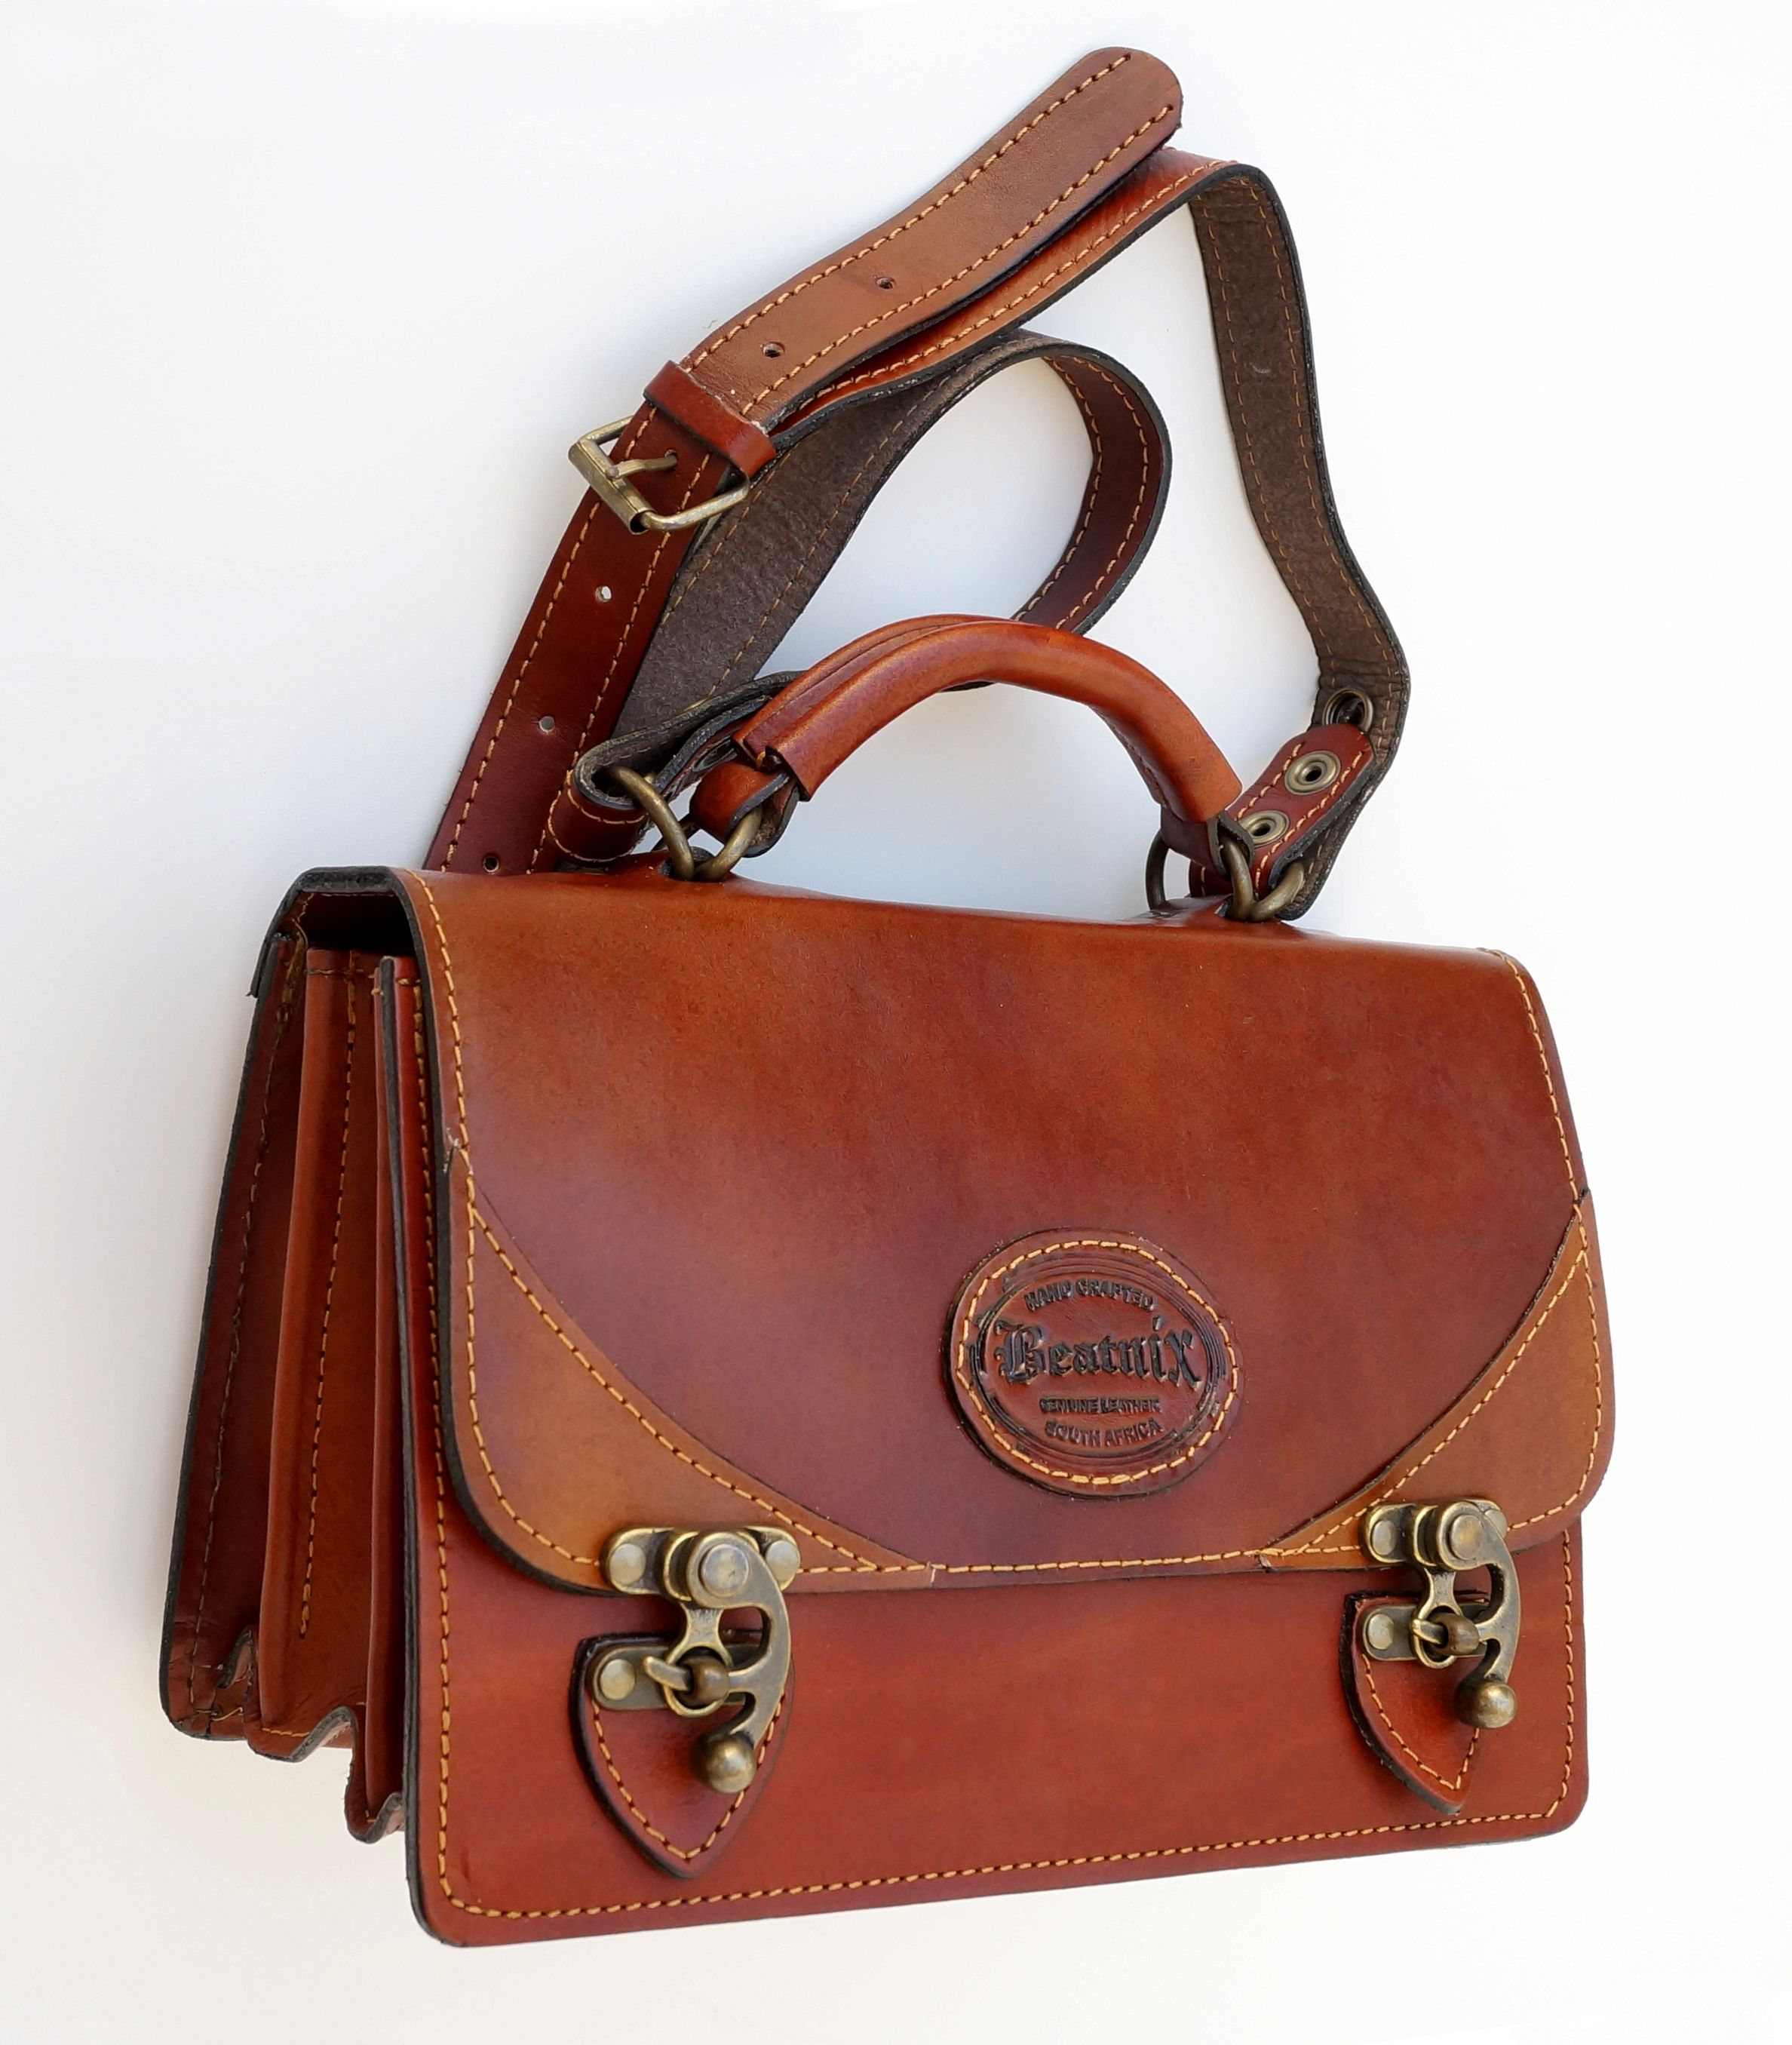 Beatnix Genuine Leather Handbag Handcrafted In South Africa Laptop Cases Cape Town Funny